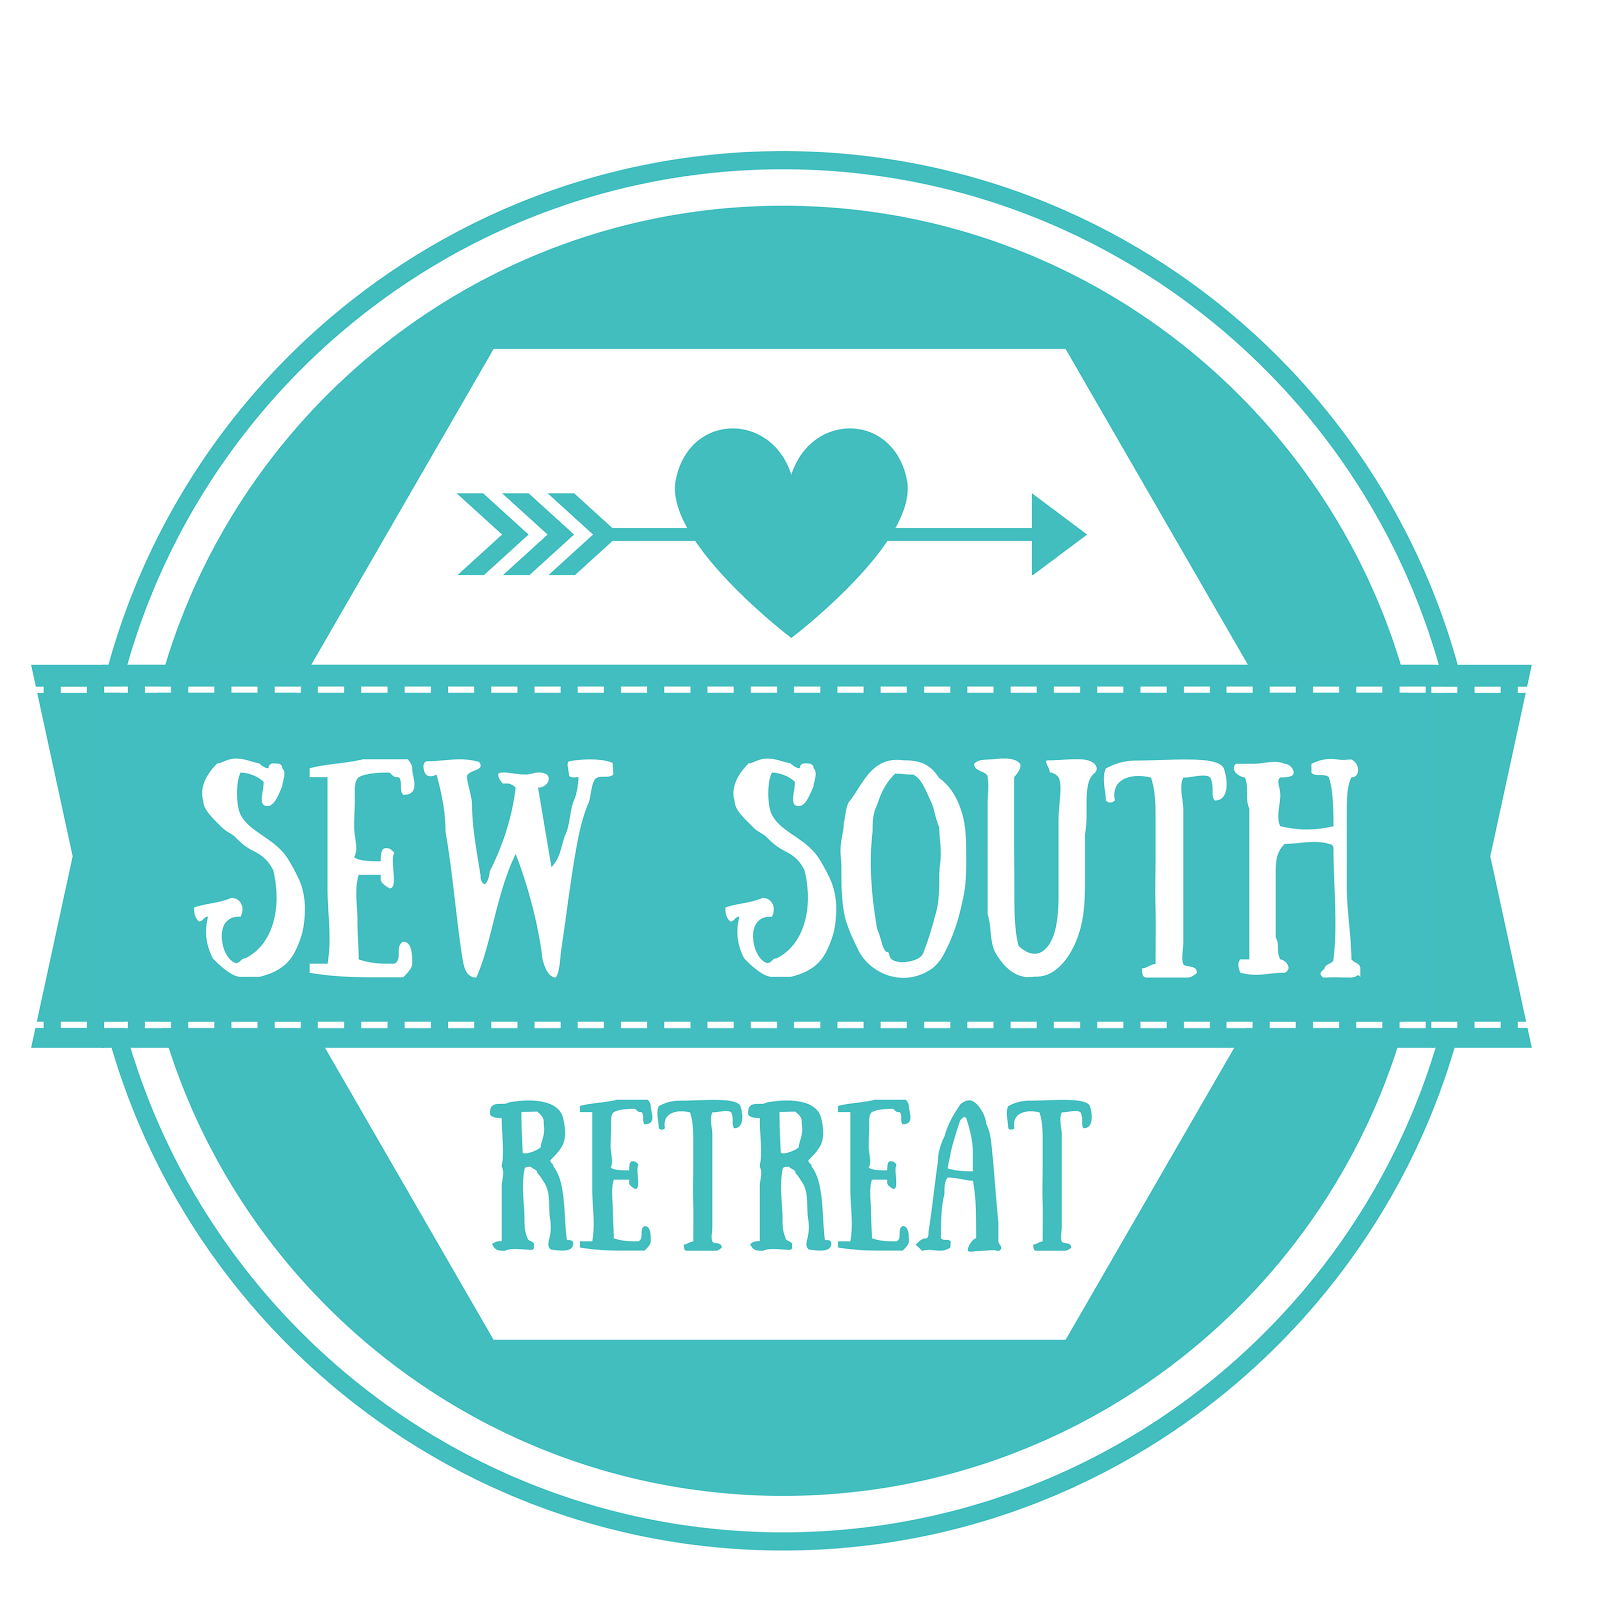 Sew South Retreat | Advance your sewing skills